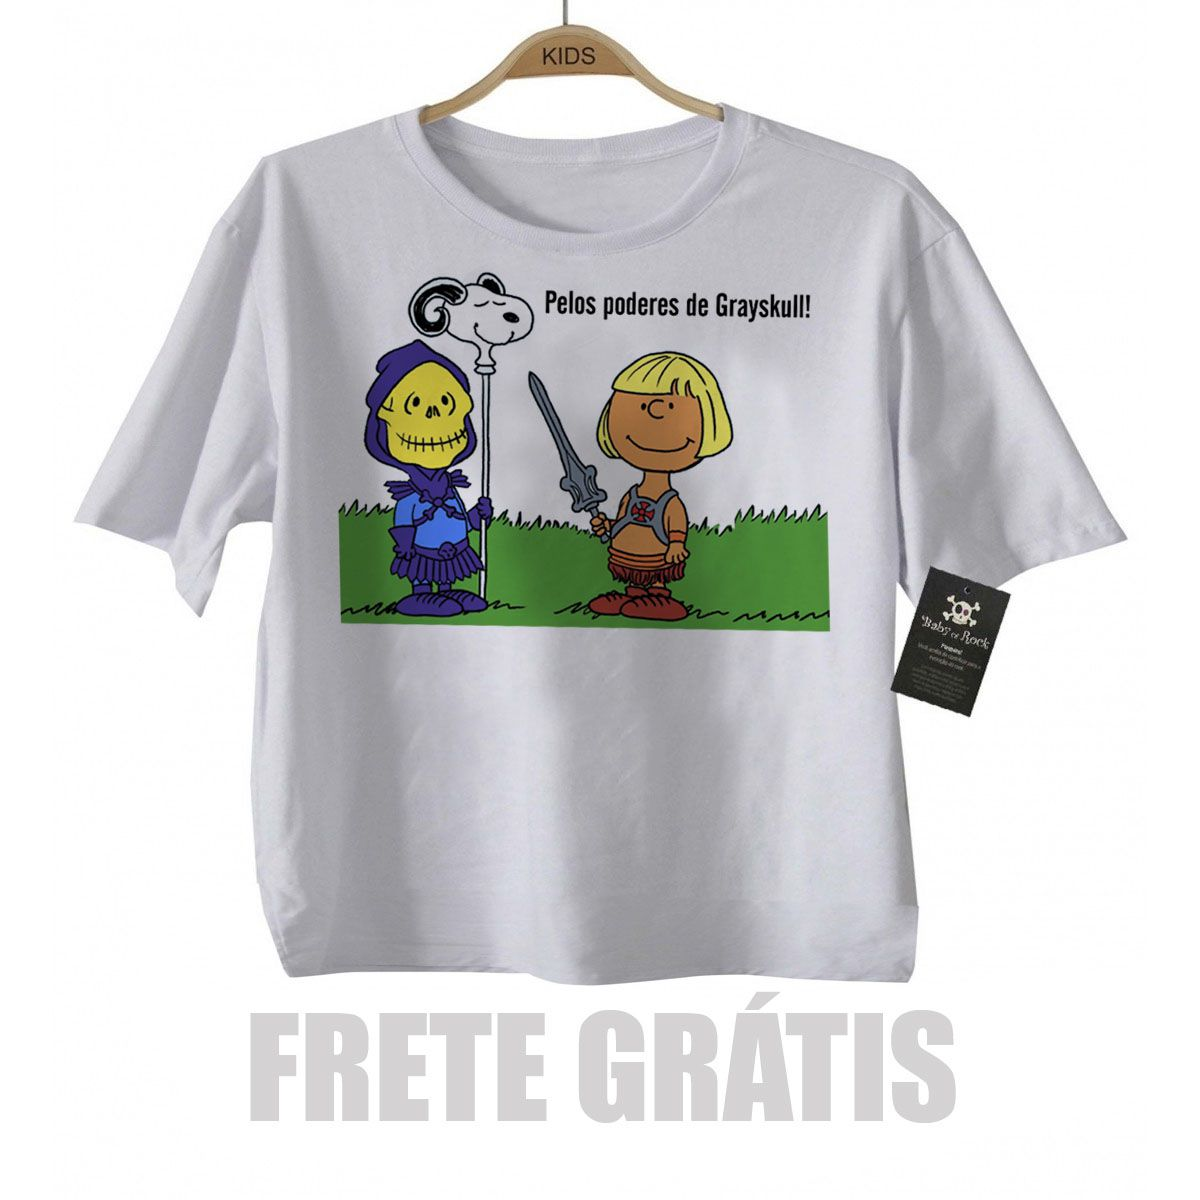 Camiseta Infantil  He man Snoopy -  White  - Baby Monster - Body Bebe